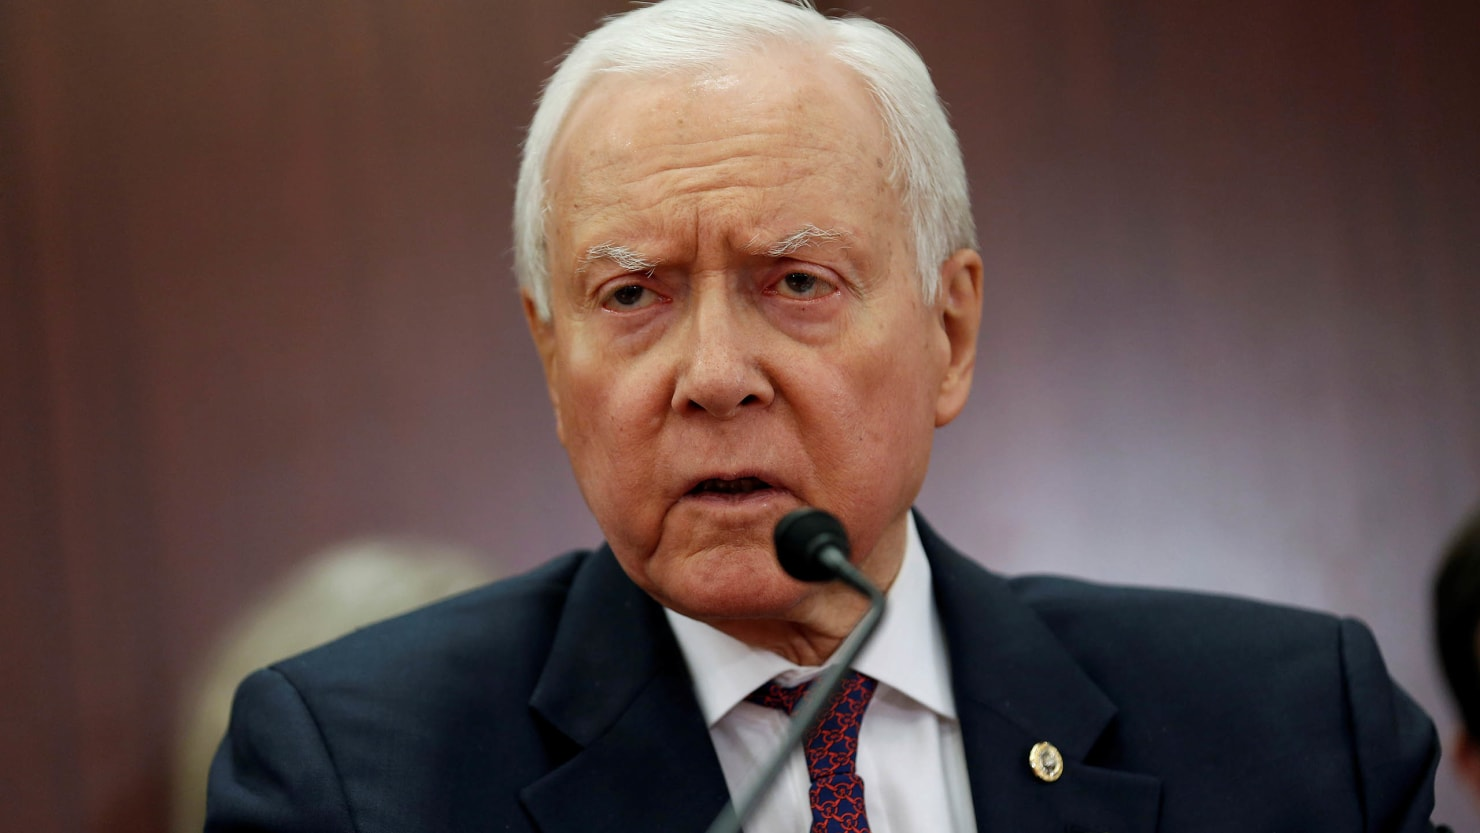 Orrin Hatch to retire, opening way for Mitt Romney